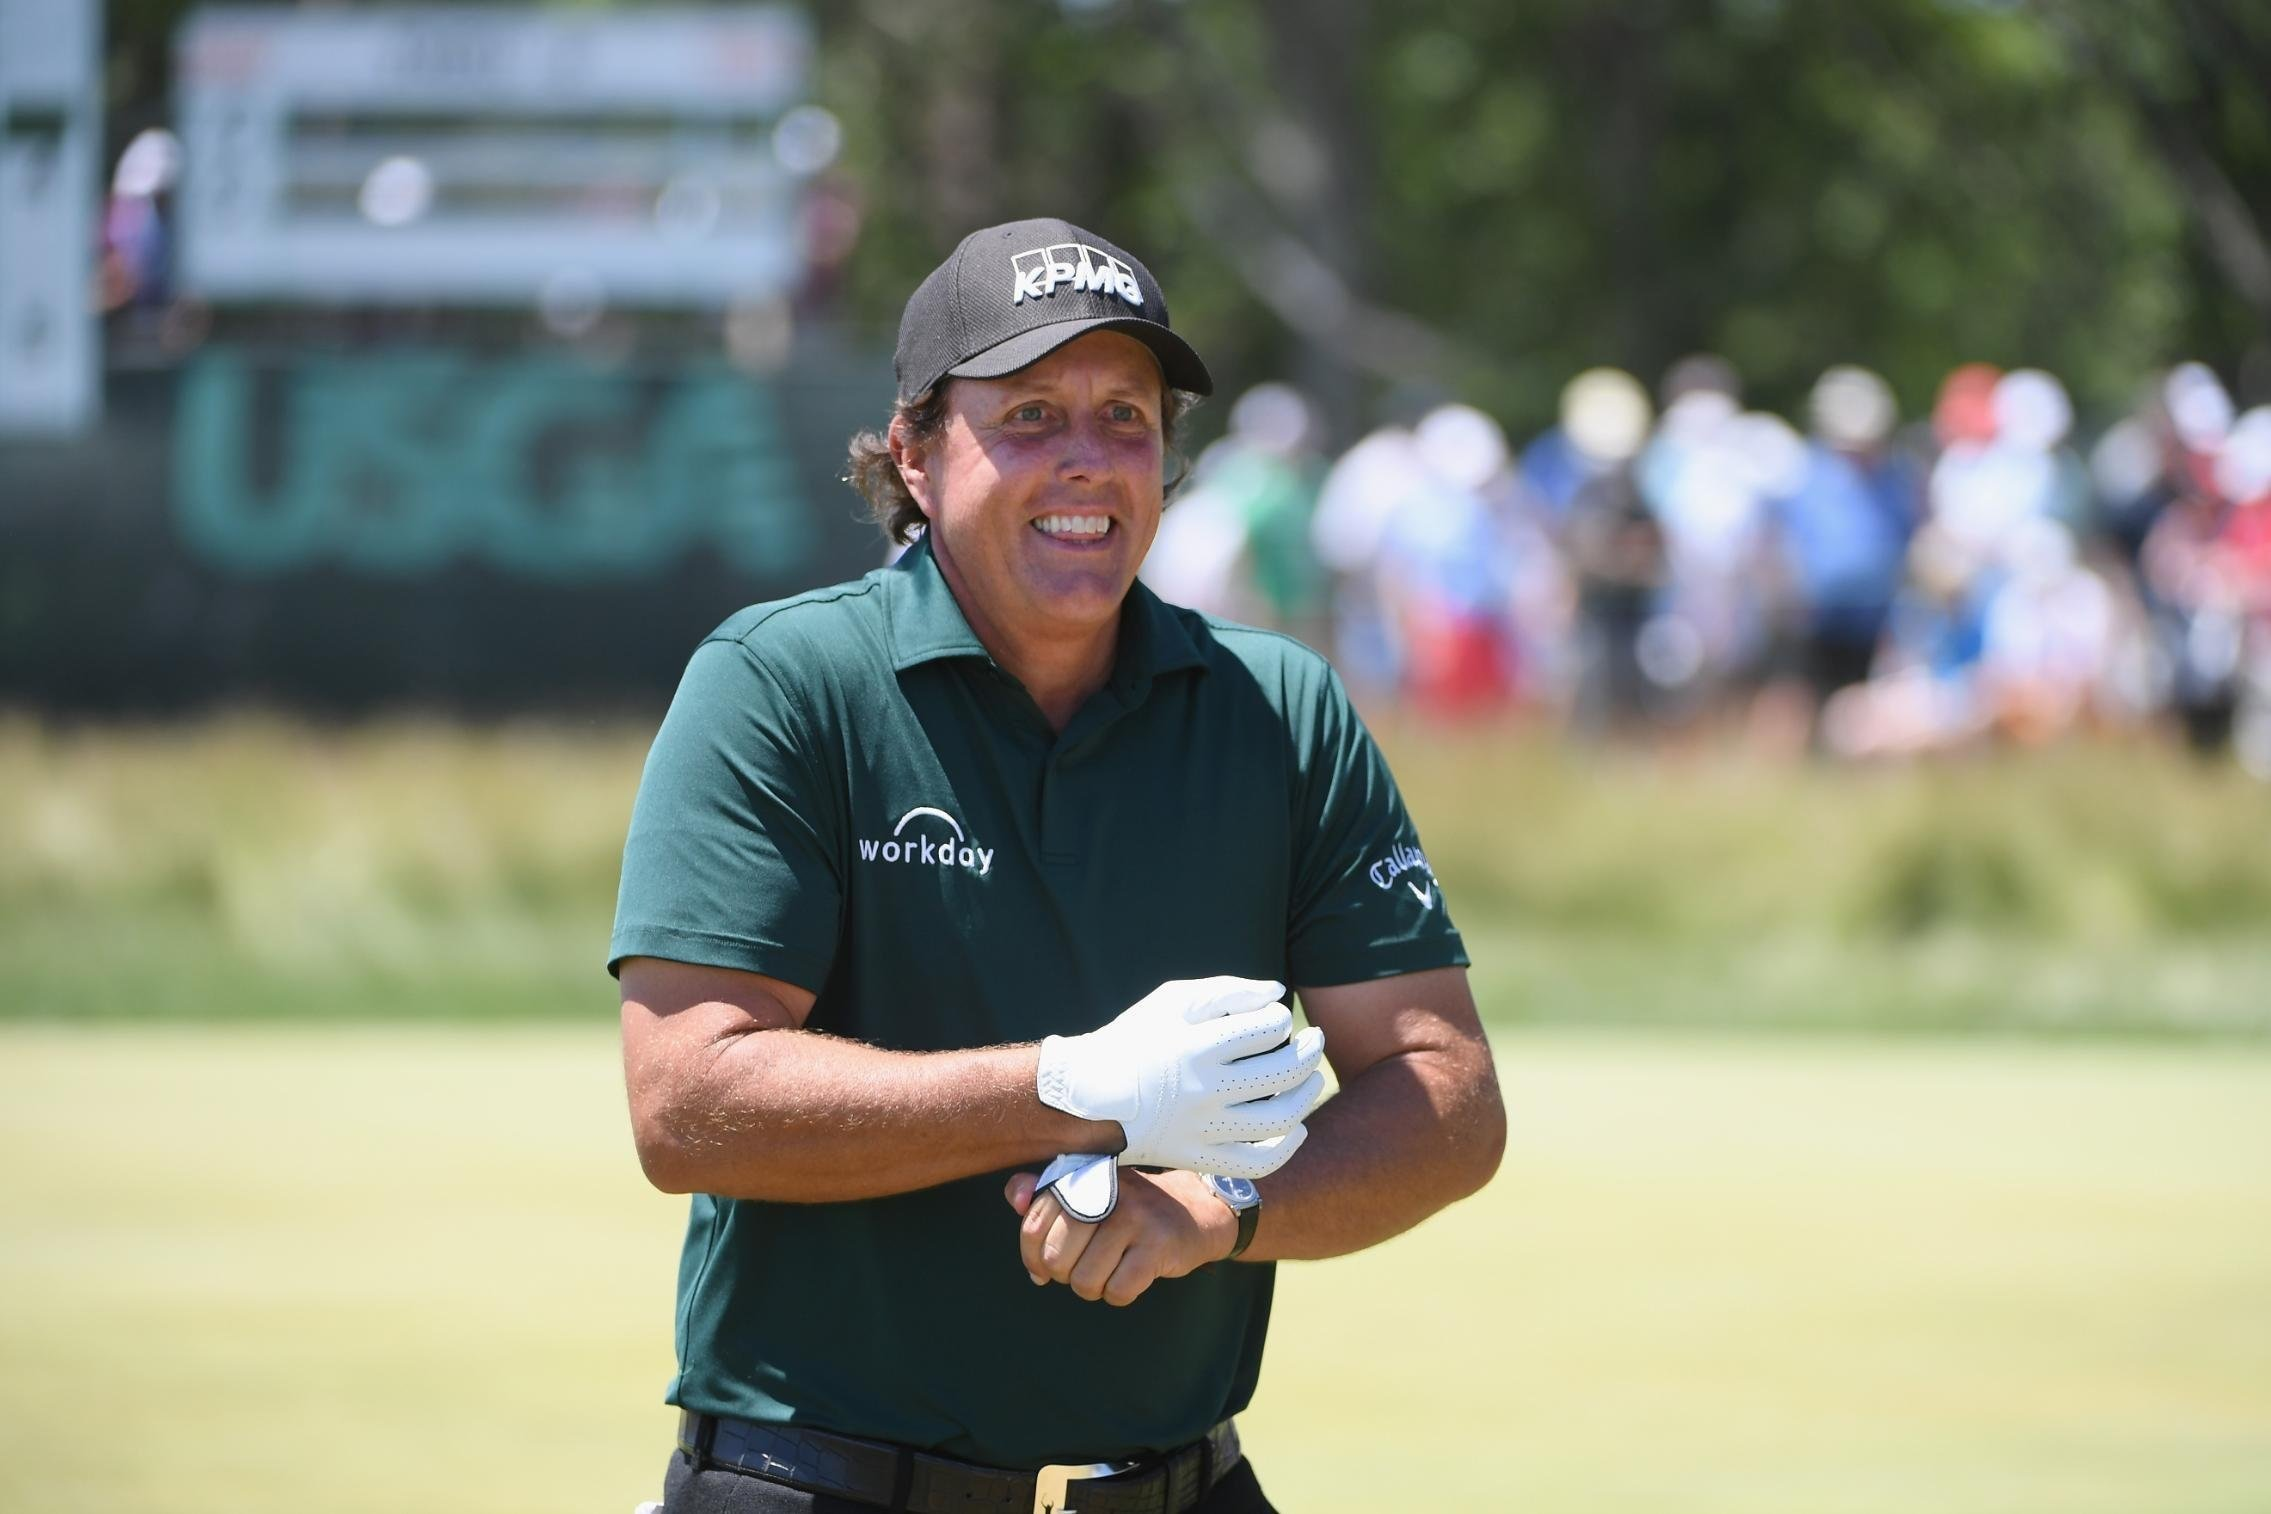 Mickelson Hits Moving Ball with Putter, Receives Sextuple Bogey